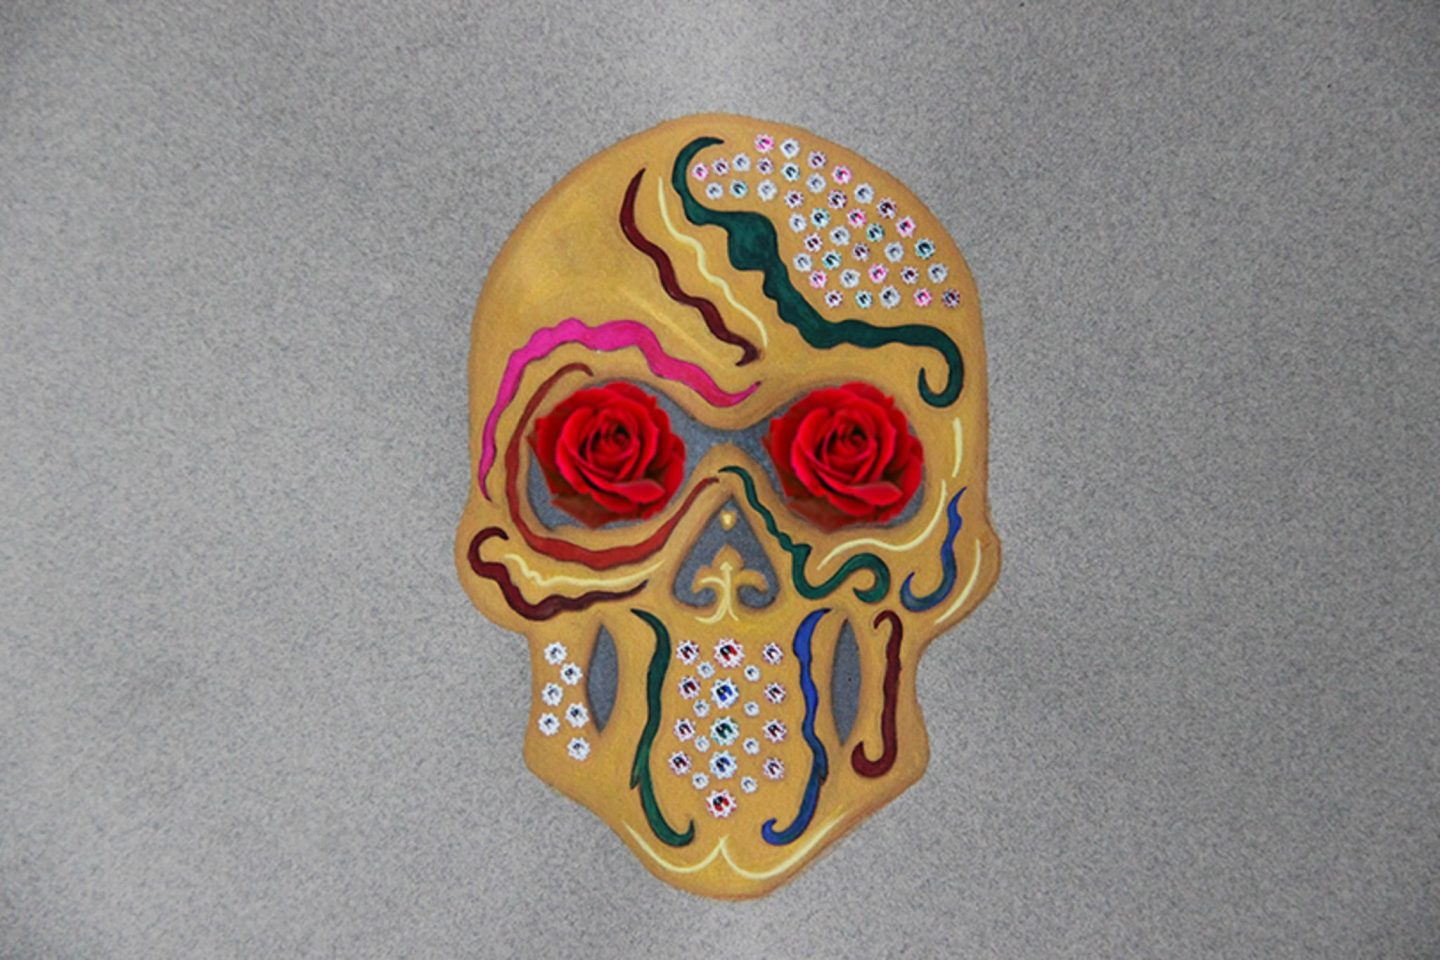 Painting of a face skeleton looking up front with red roses in the orbit as eyes adorned with multi coloured precious stones and multi coloured enamels.